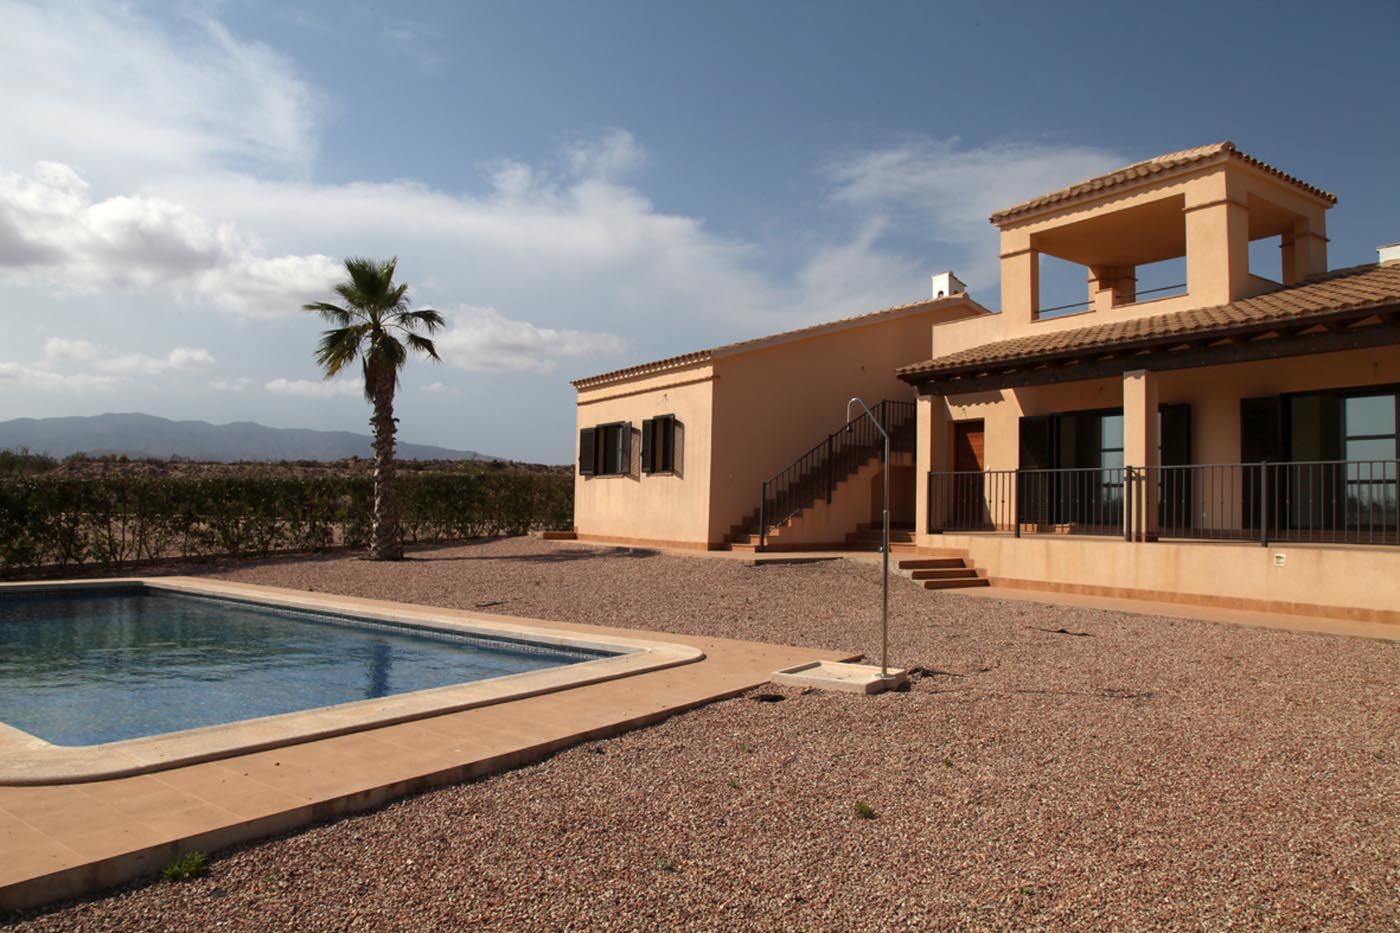 Wonderful Property in Sunny Spain with 4 bedrooms